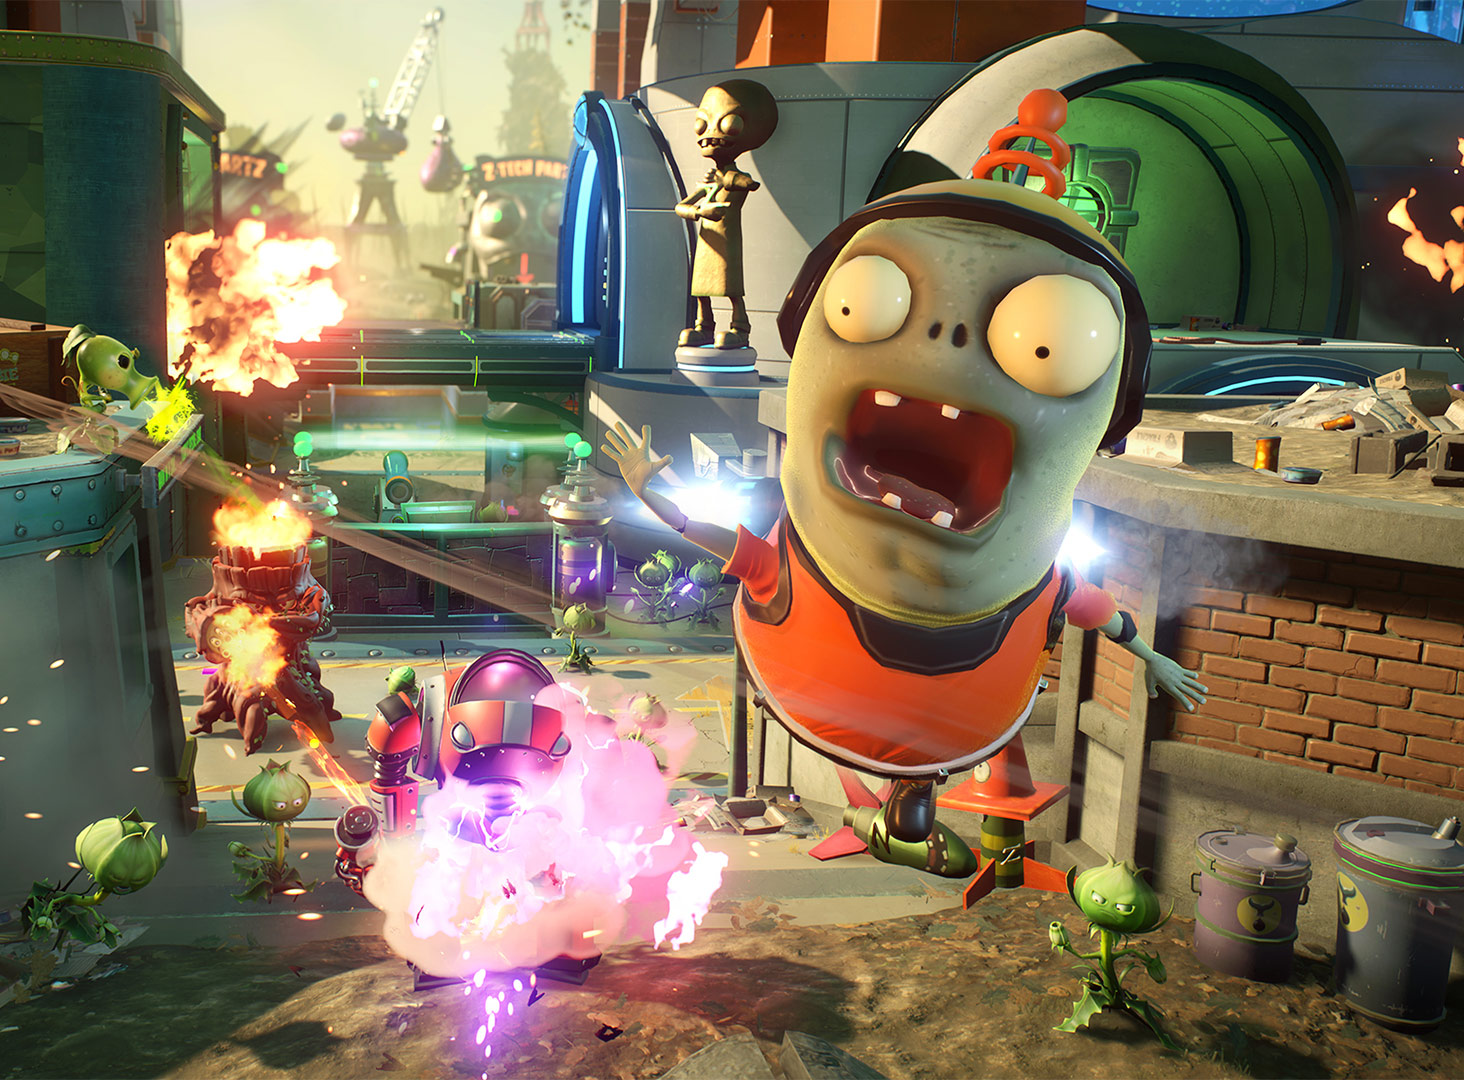 Plants vs zombies garden warfare 2 review polygon - Plants vs zombies garden warfare 2 review ...